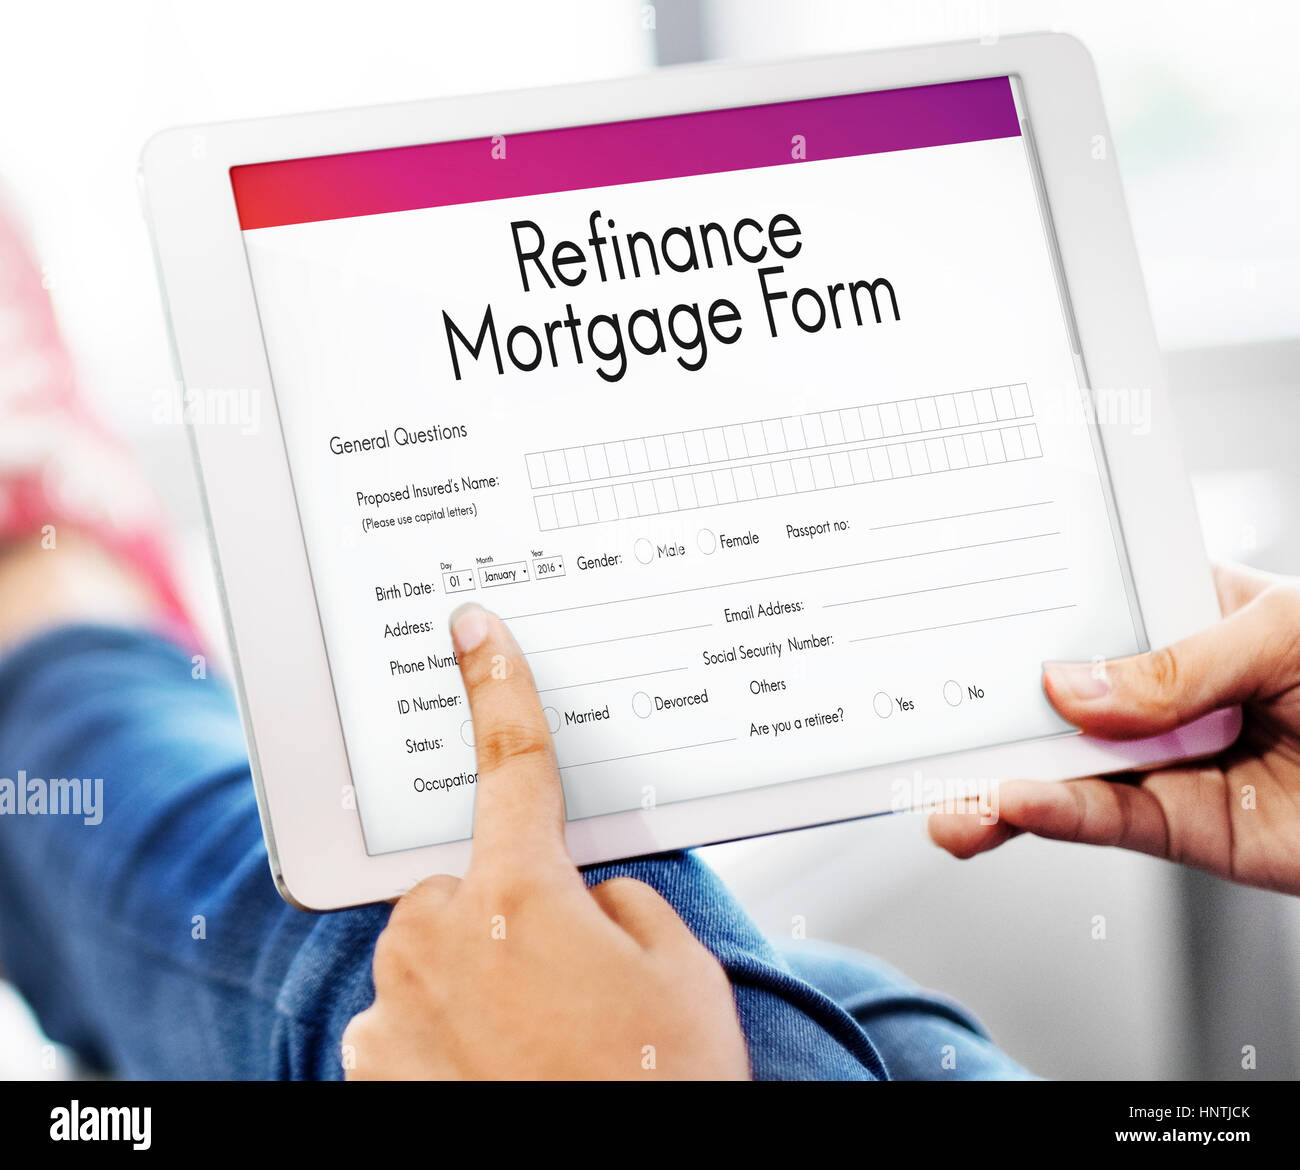 Mortgage Loan Pawn Pledge Refinance Insure Concept - Stock Image